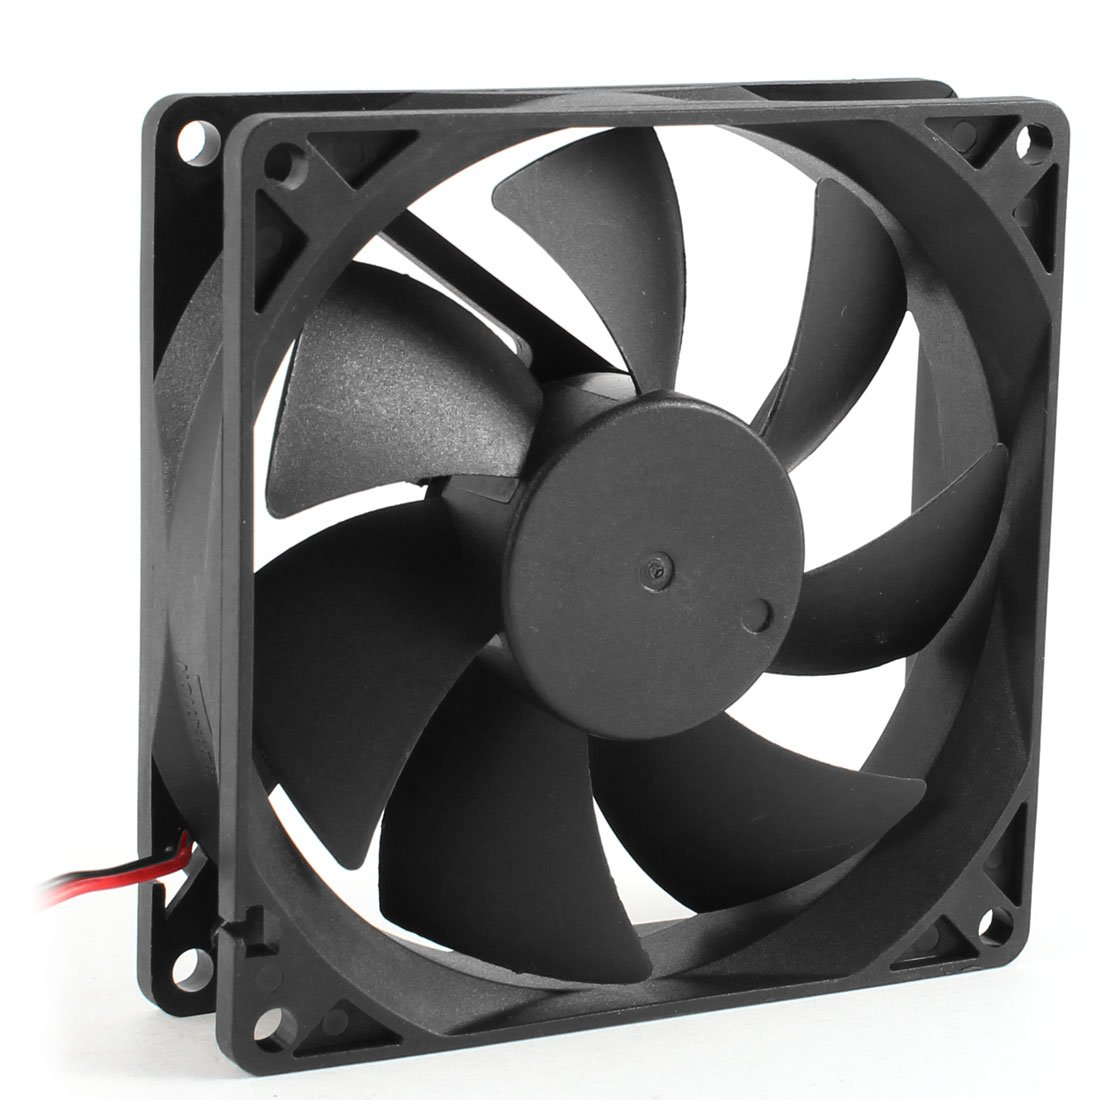 8025 12V DC Cooling Fan for PC Computer Case CPU Set-top Box Router Receiver DVR